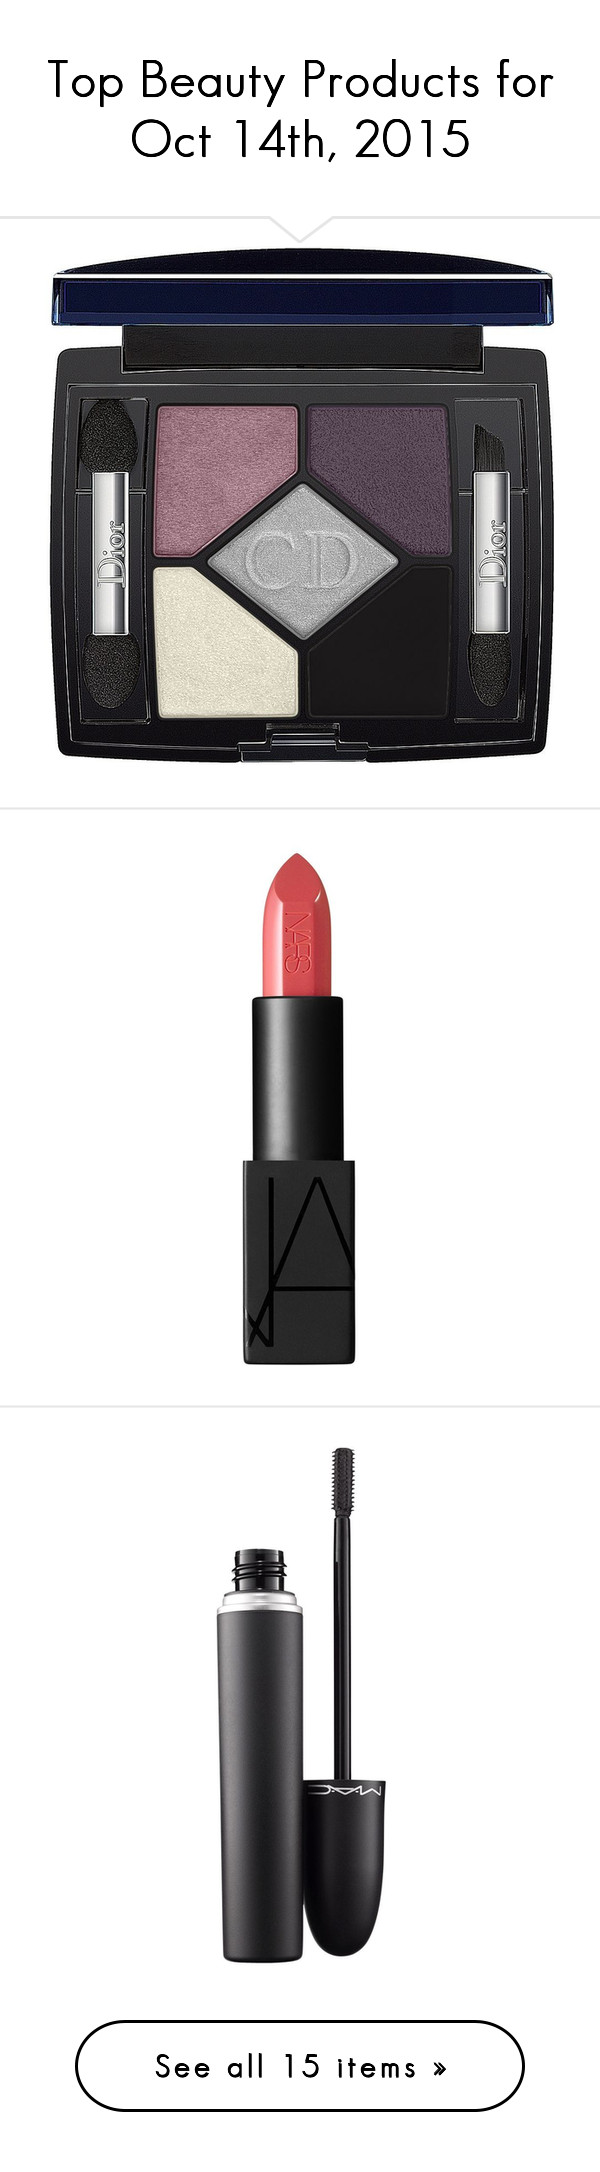 """""""Top Beauty Products for Oct 14th, 2015"""" by polyvore ❤ liked on Polyvore featuring beauty products, makeup, eye makeup, eyeshadow, beauty, make, apparel & accessories, pink design, pink eye shadow and pink eye makeup"""